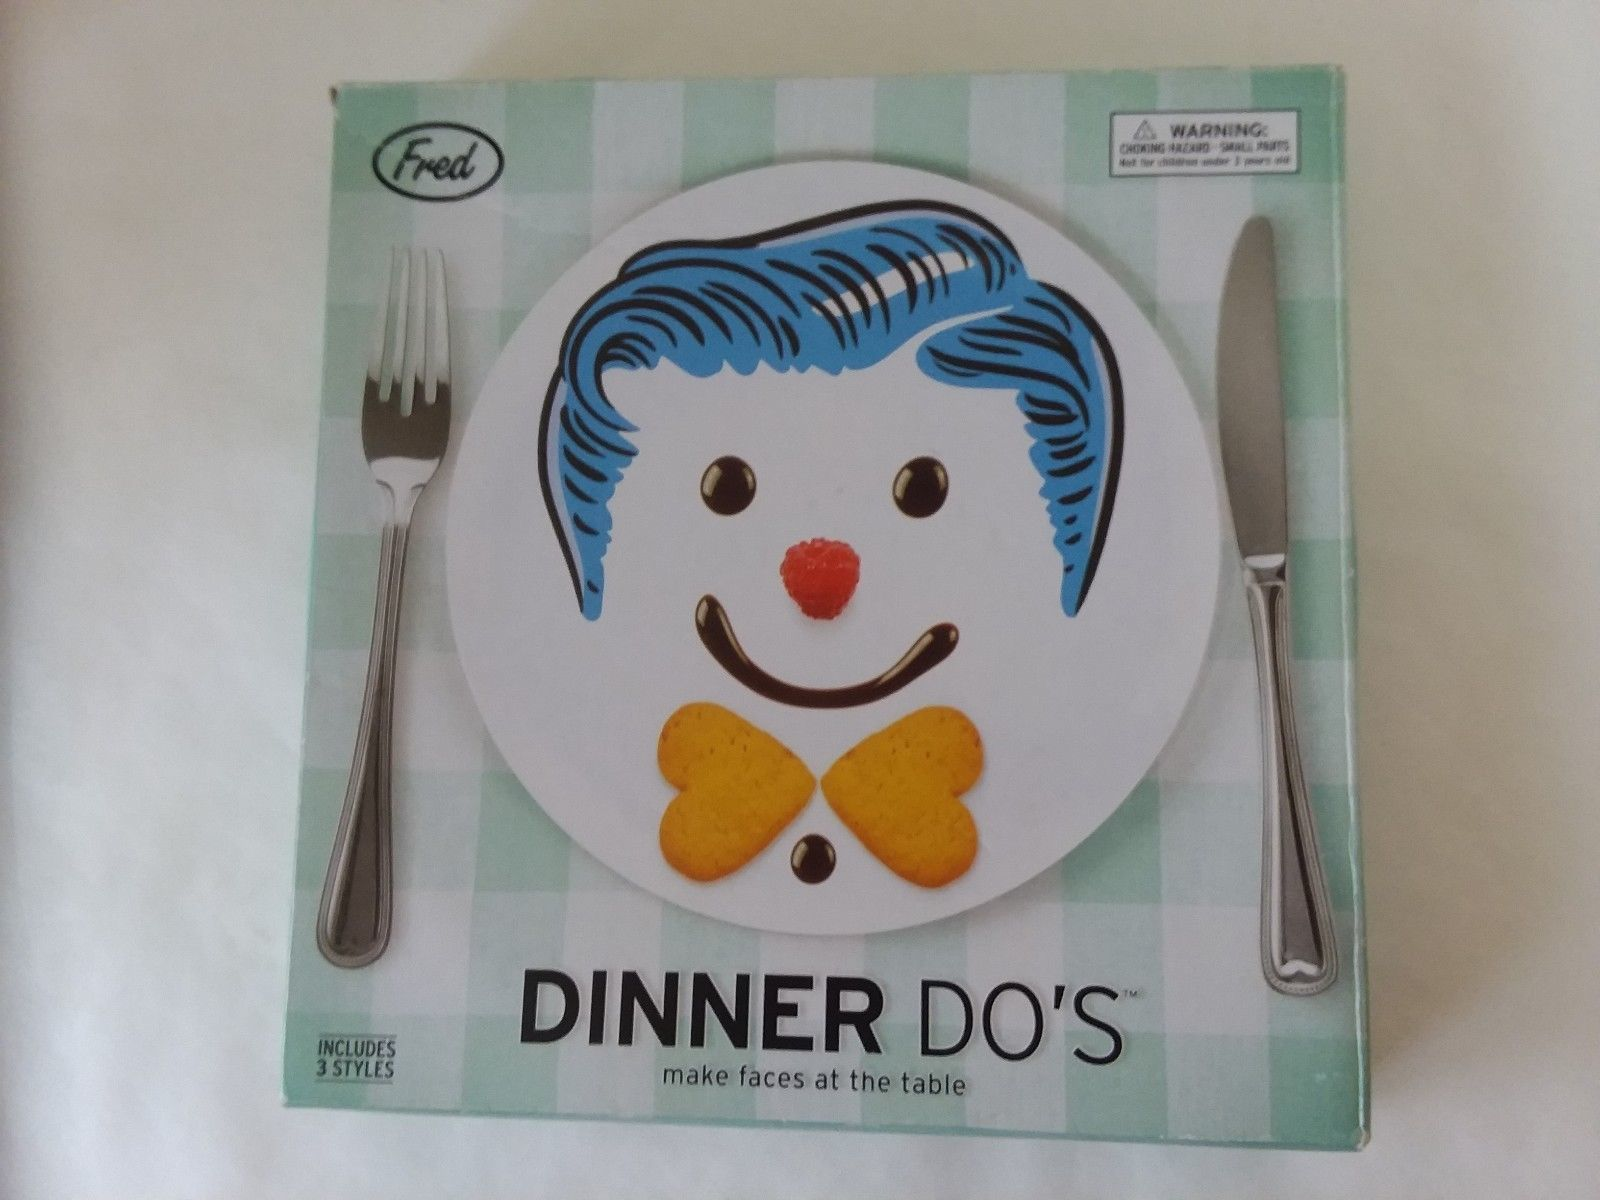 """2013 Fred Dinner Do's Boy Hairstyle Plates Includes 3 Plates 3 Styles 9"""" Diam - $18.55"""